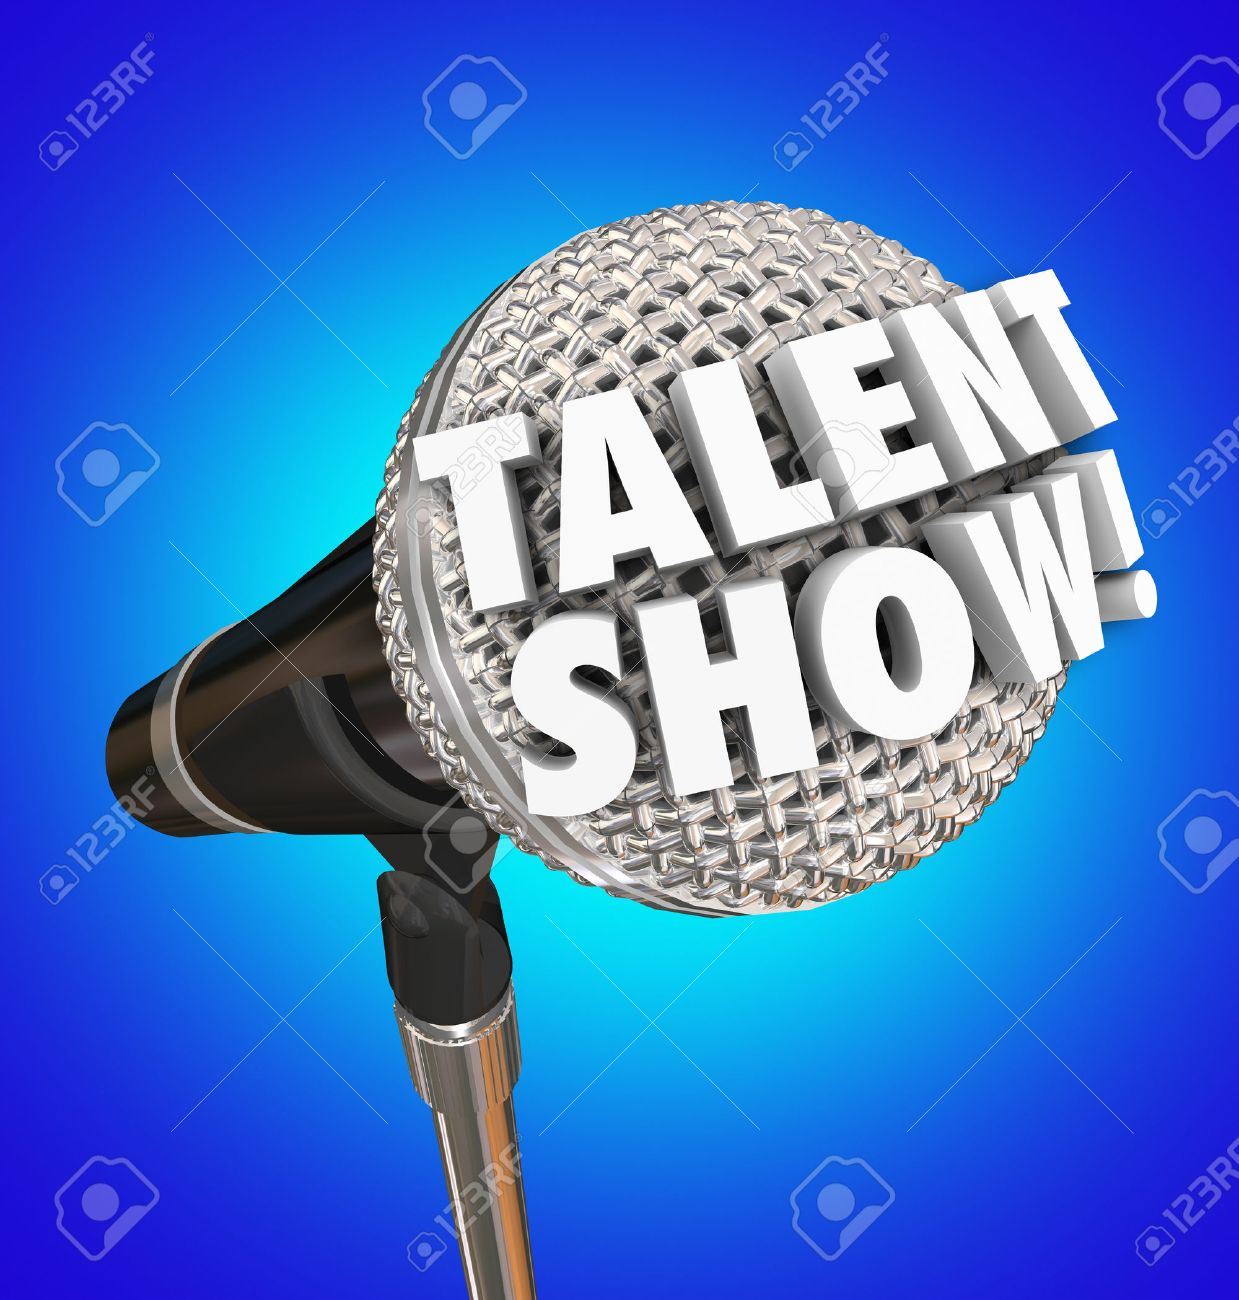 Talent Show Words In 3d Letters A Microphone To Illustrate